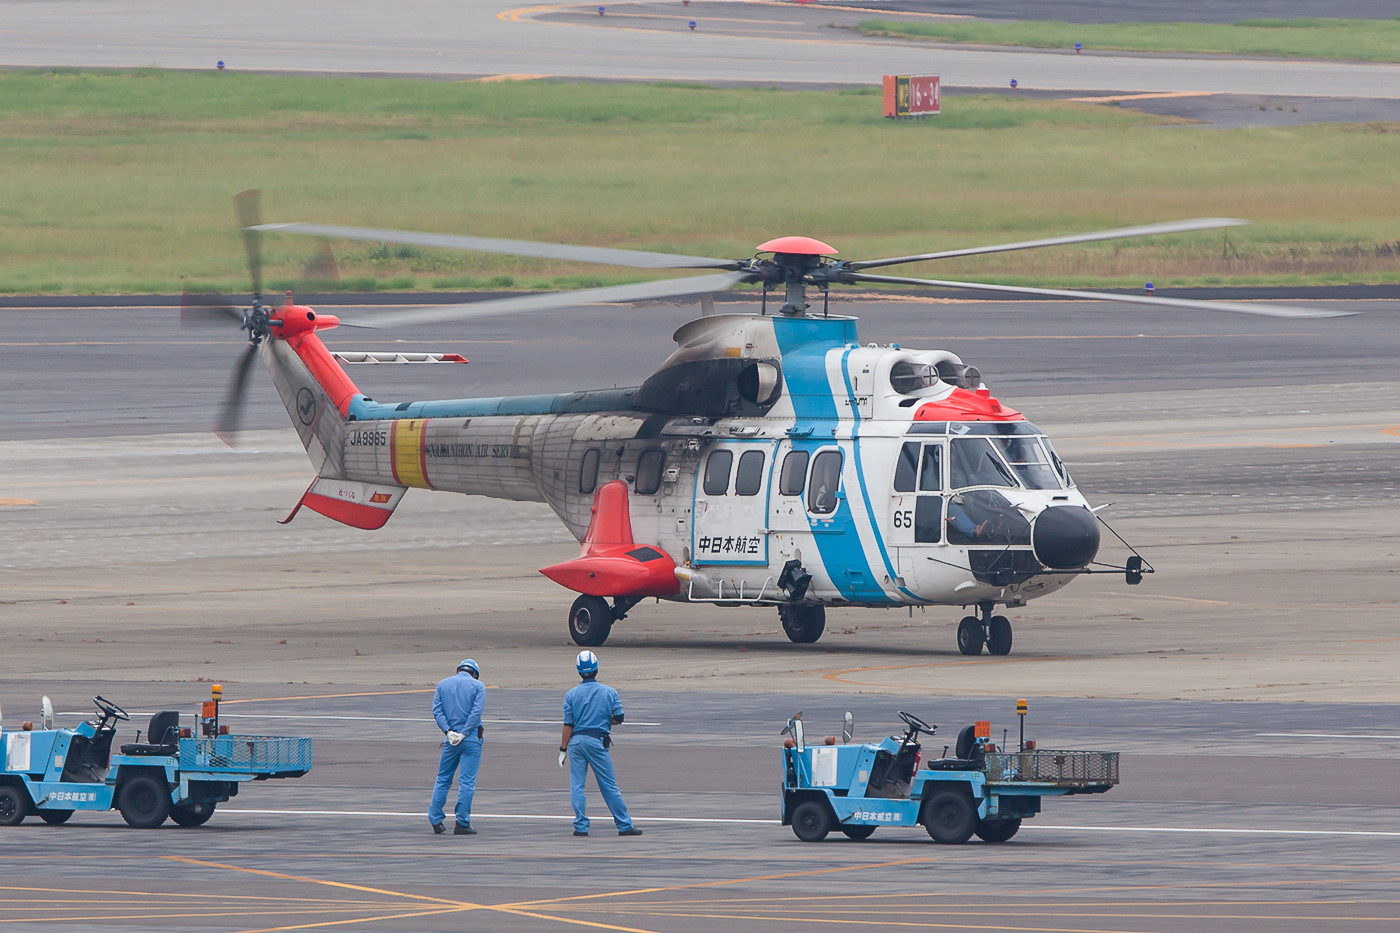 AS-332L1 Super Puma, ebenfalls Nakanihon Air Service.